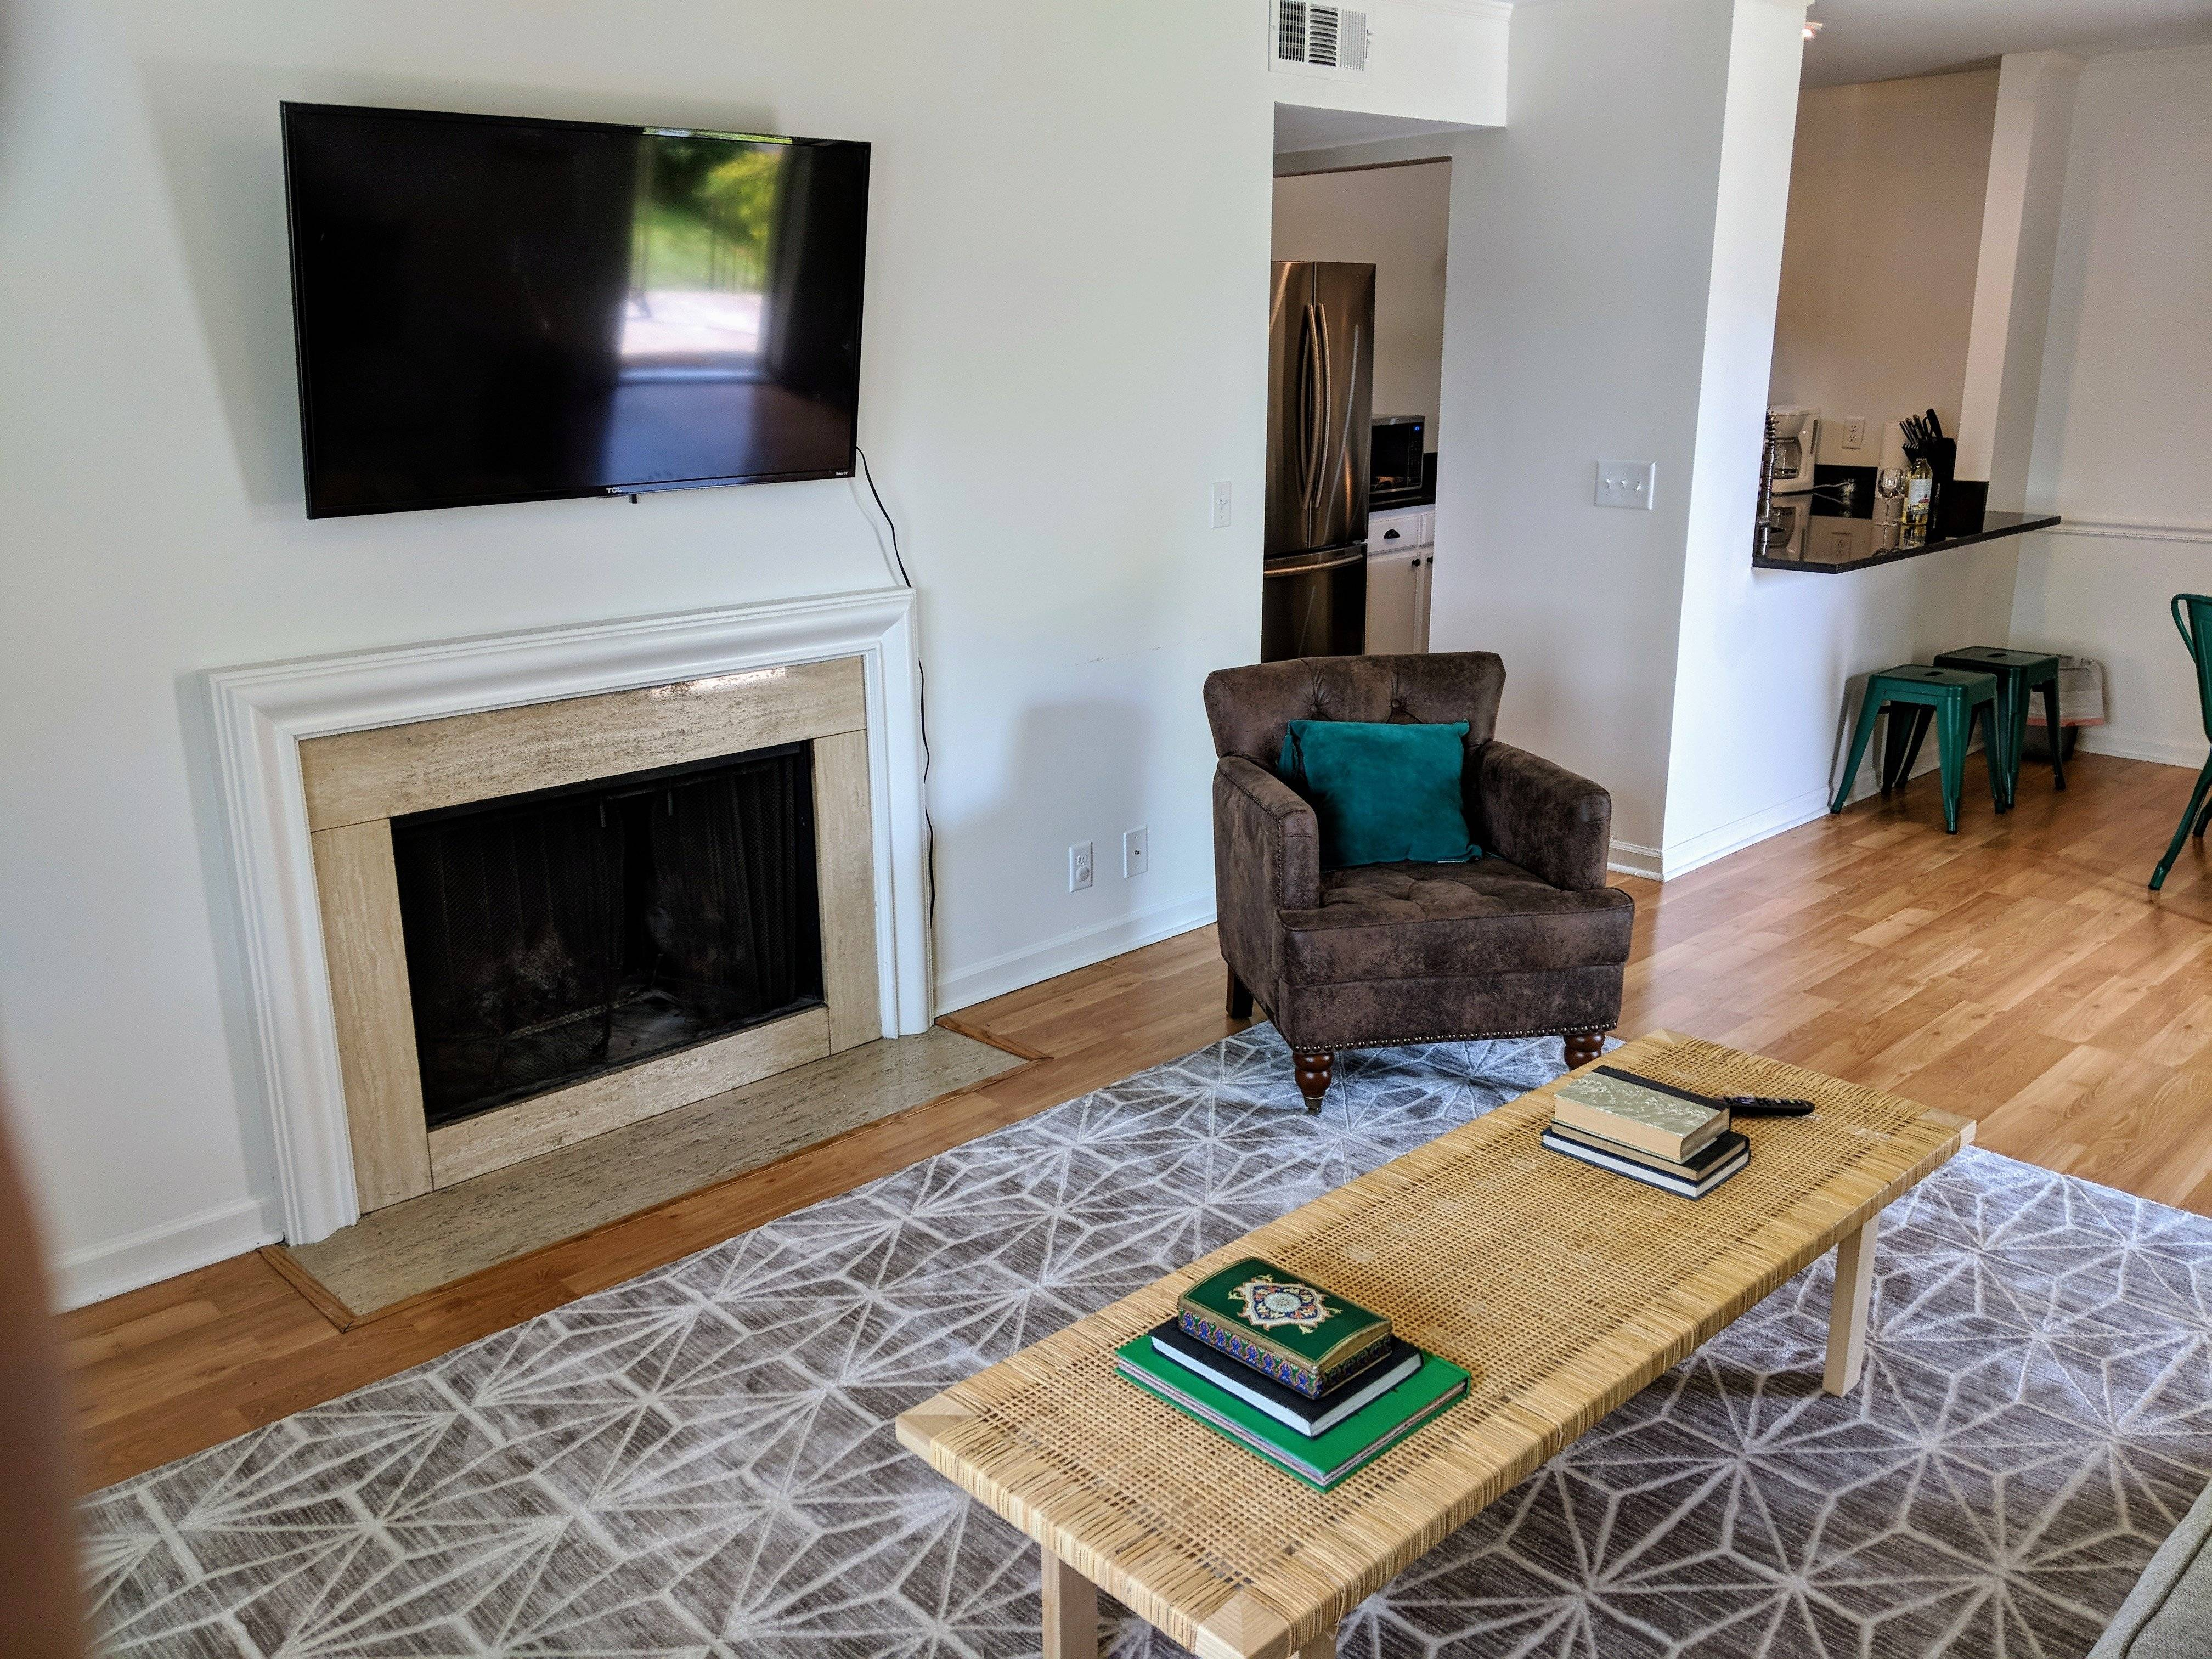 Open floorplan with fireplace and tv included